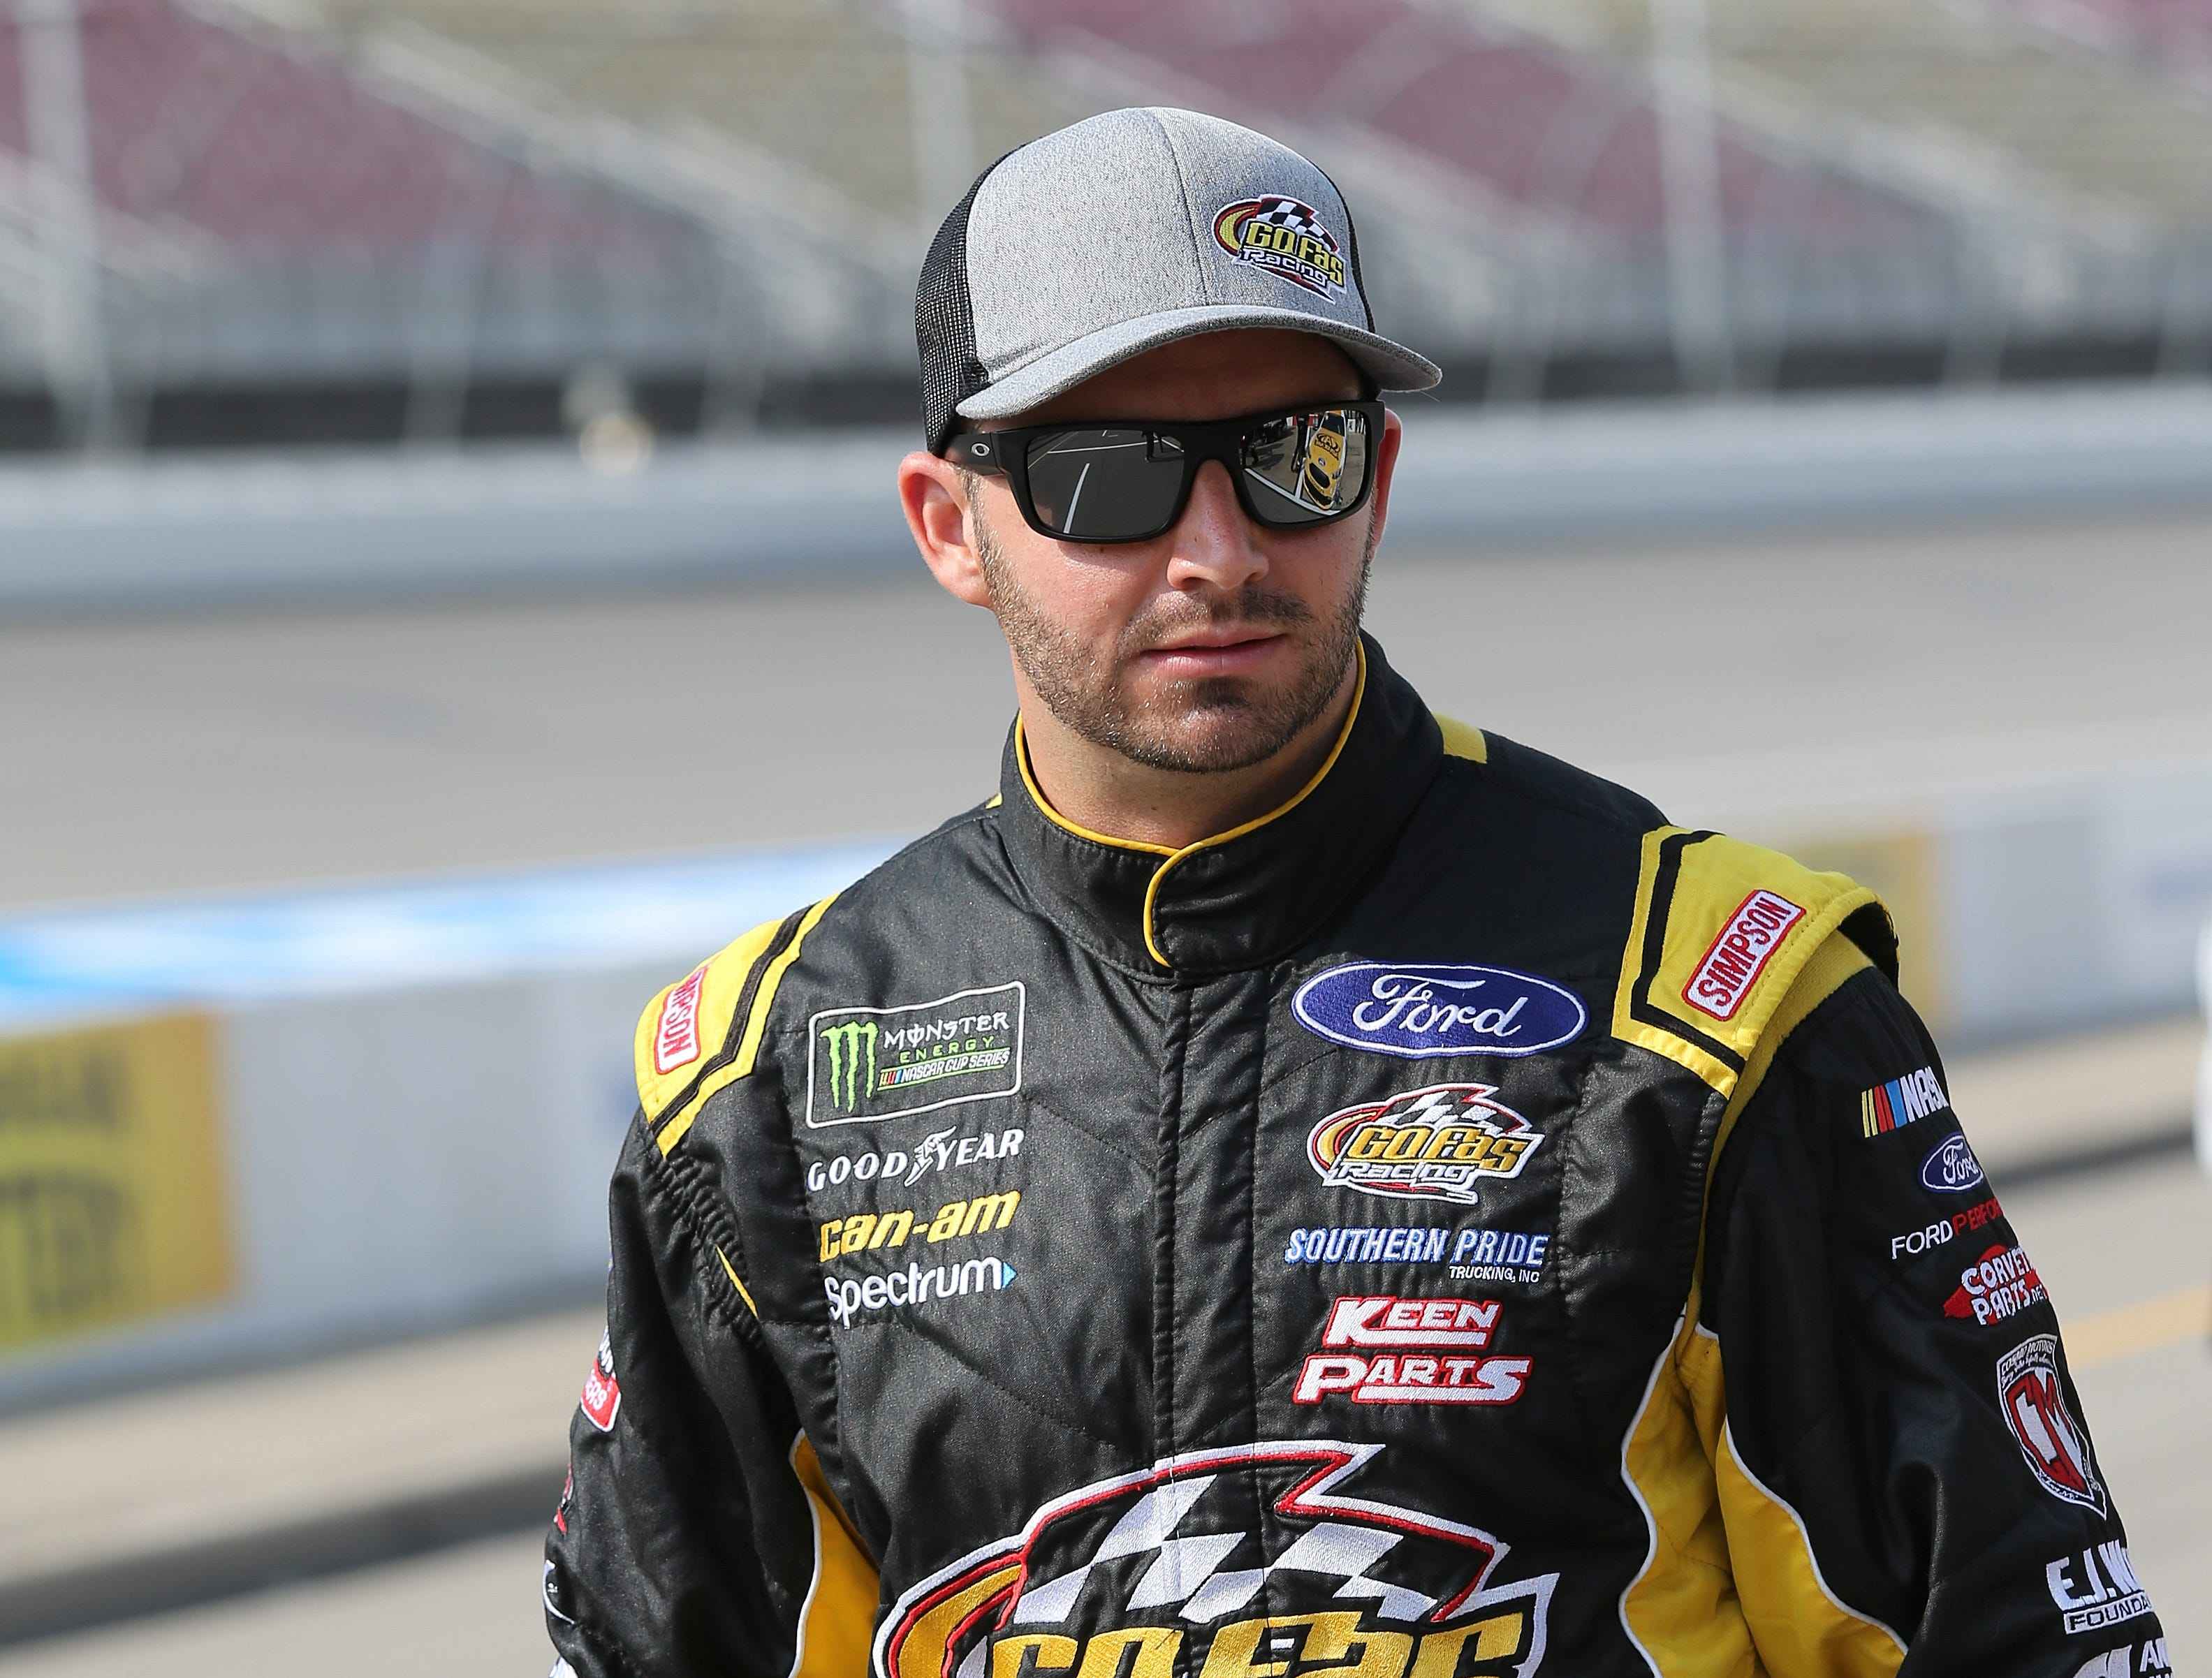 Matt DiBenedetto, driver of the #32 Harvest Investments & Properties Ford, walks to his car during qualifying for the Monster Energy NASCAR Cup Series Consmers Energy 400 at Michigan International Speedway on August 10, 2018 in Brooklyn, Michigan.